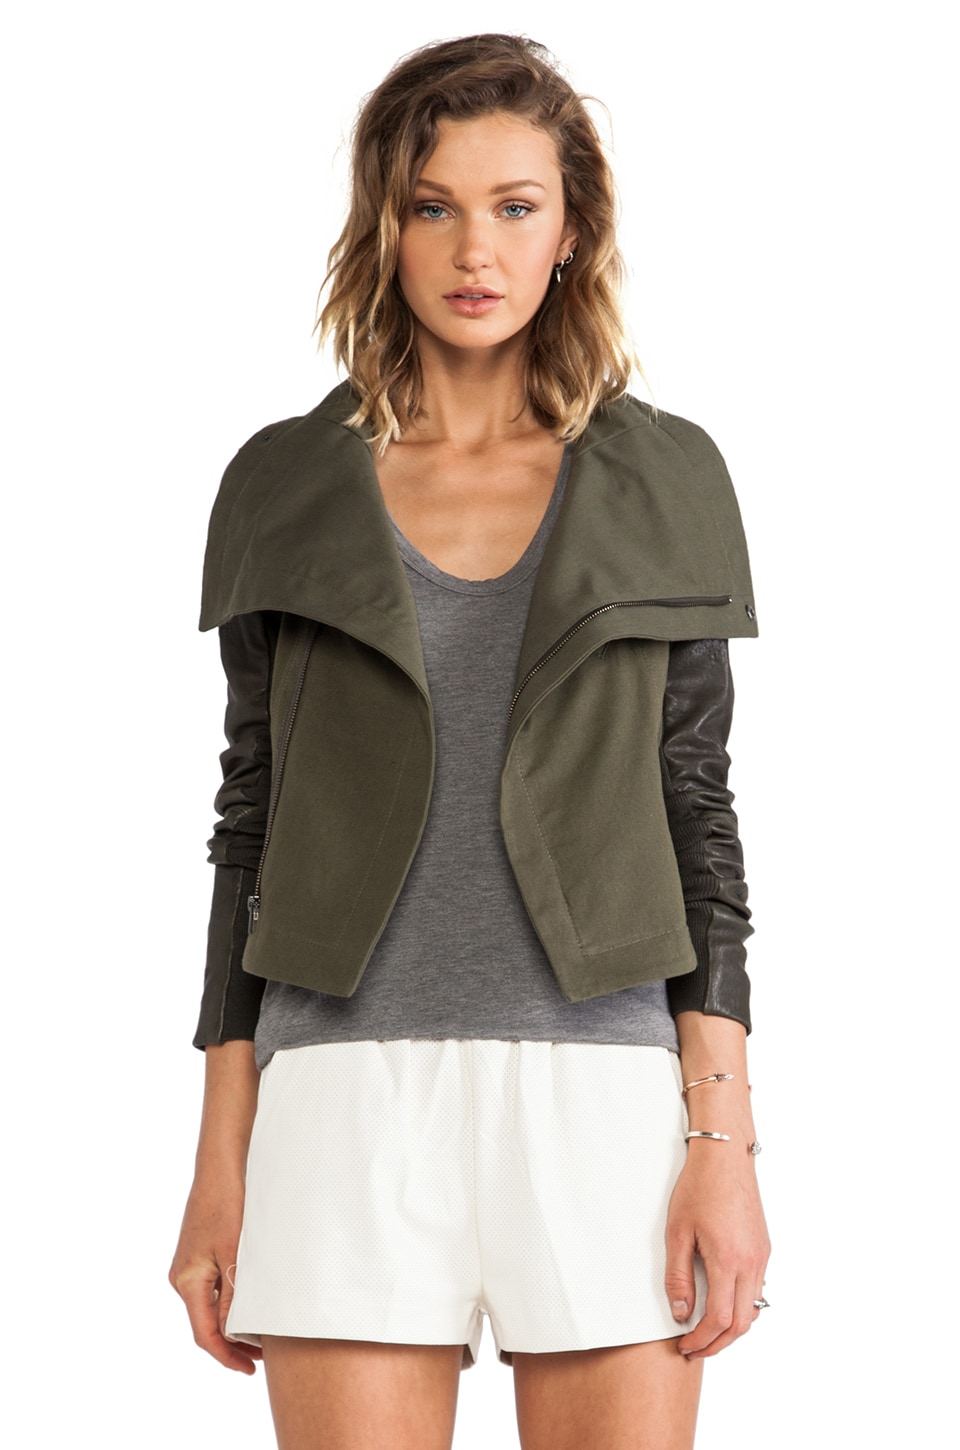 VEDA Max Army Jacket in Army